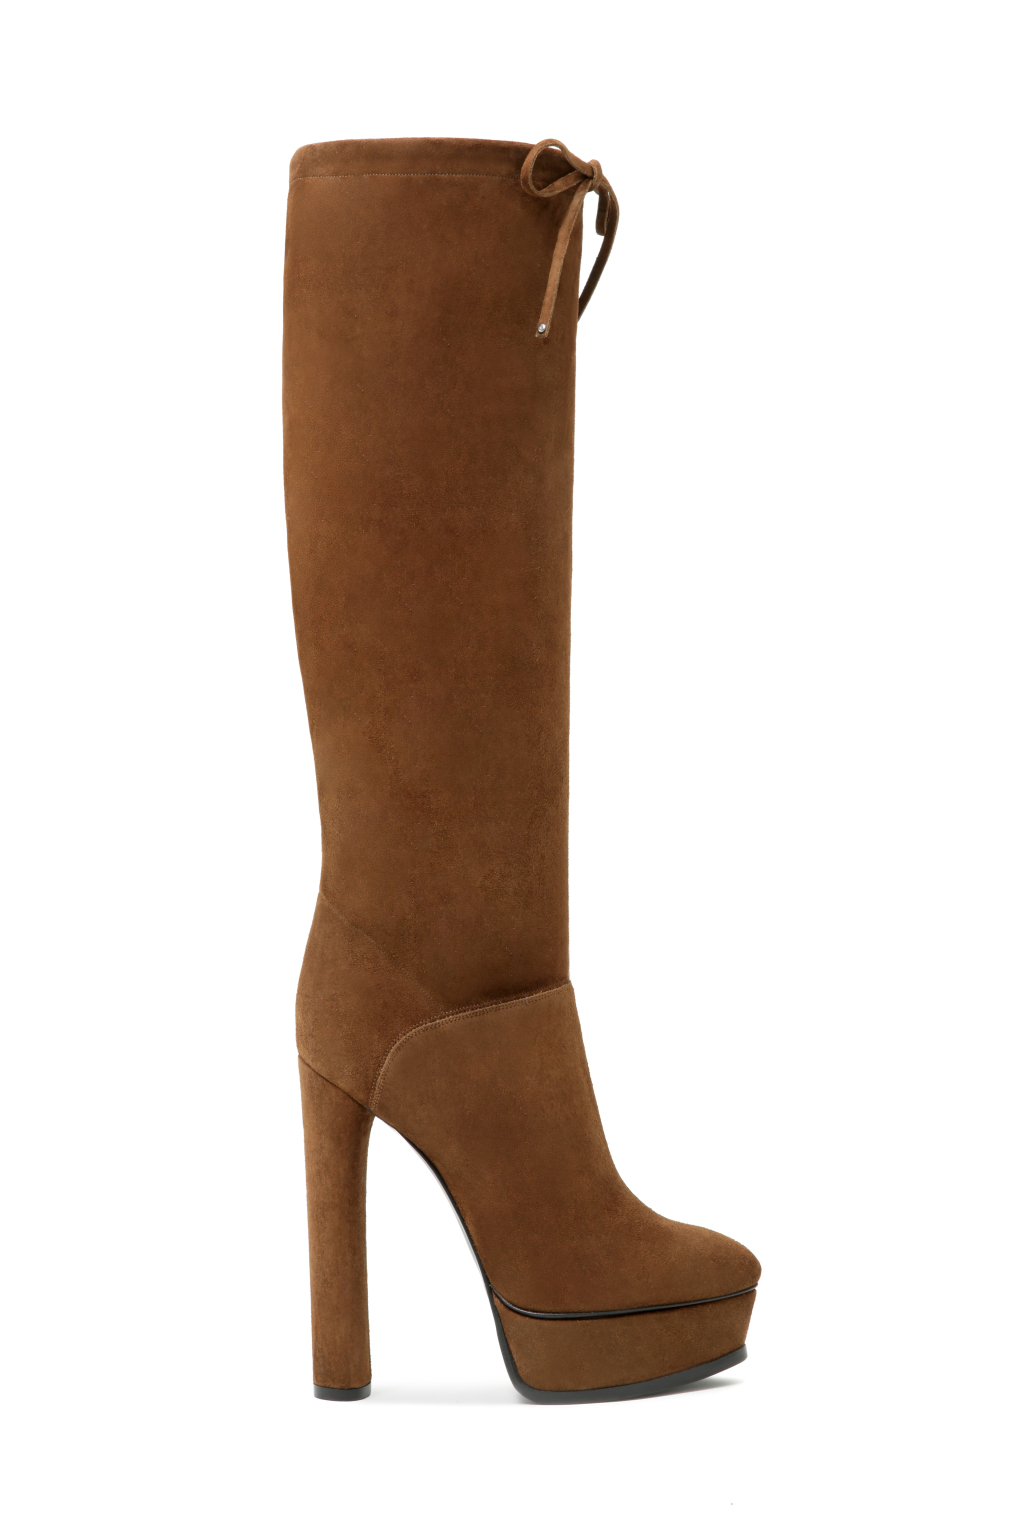 19-casadei-tall-boot-20